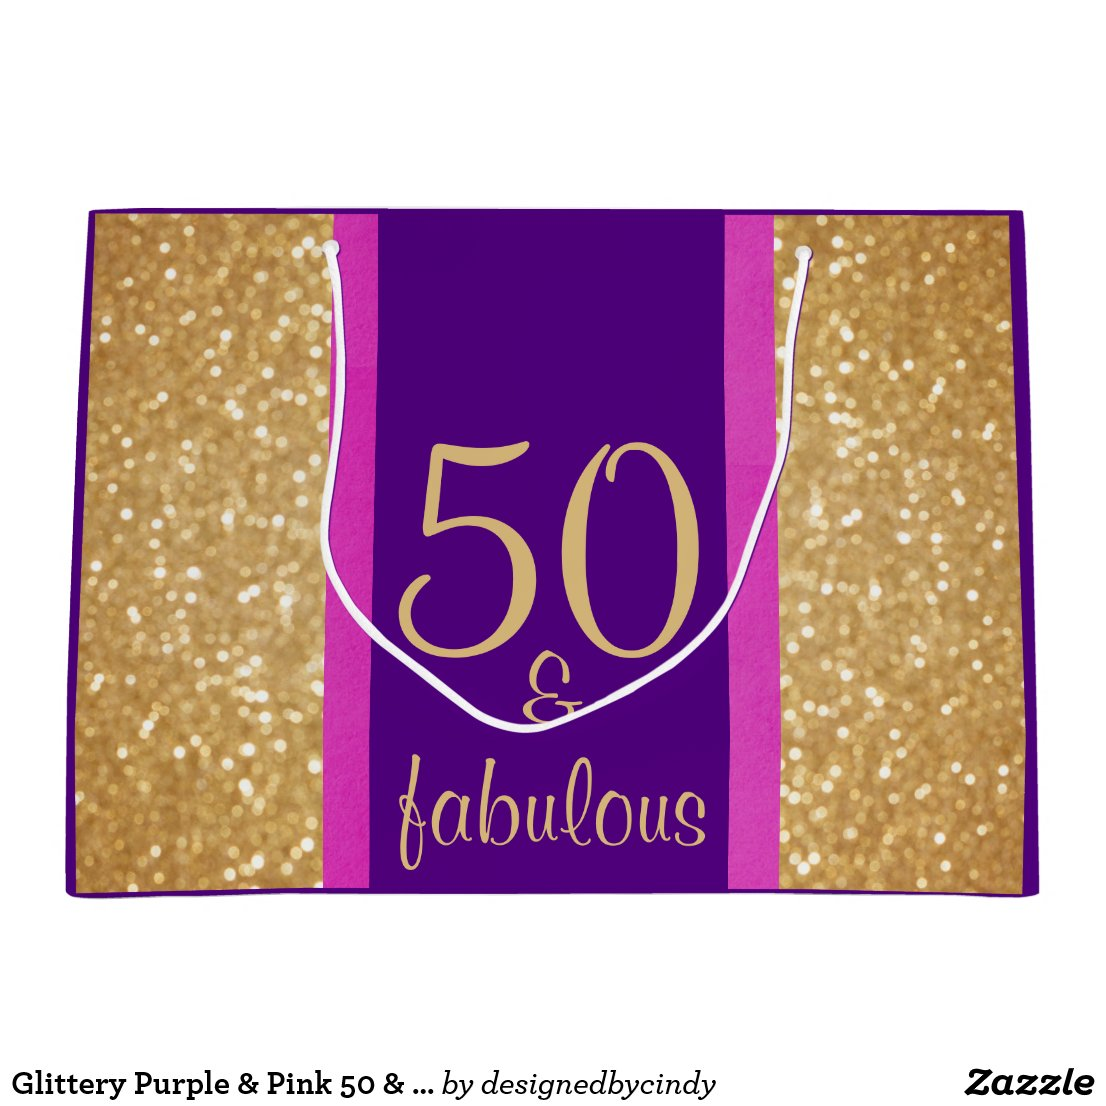 Glittery Purple & Pink 50 & Fabulous 50th Birthday Large Gift Bag